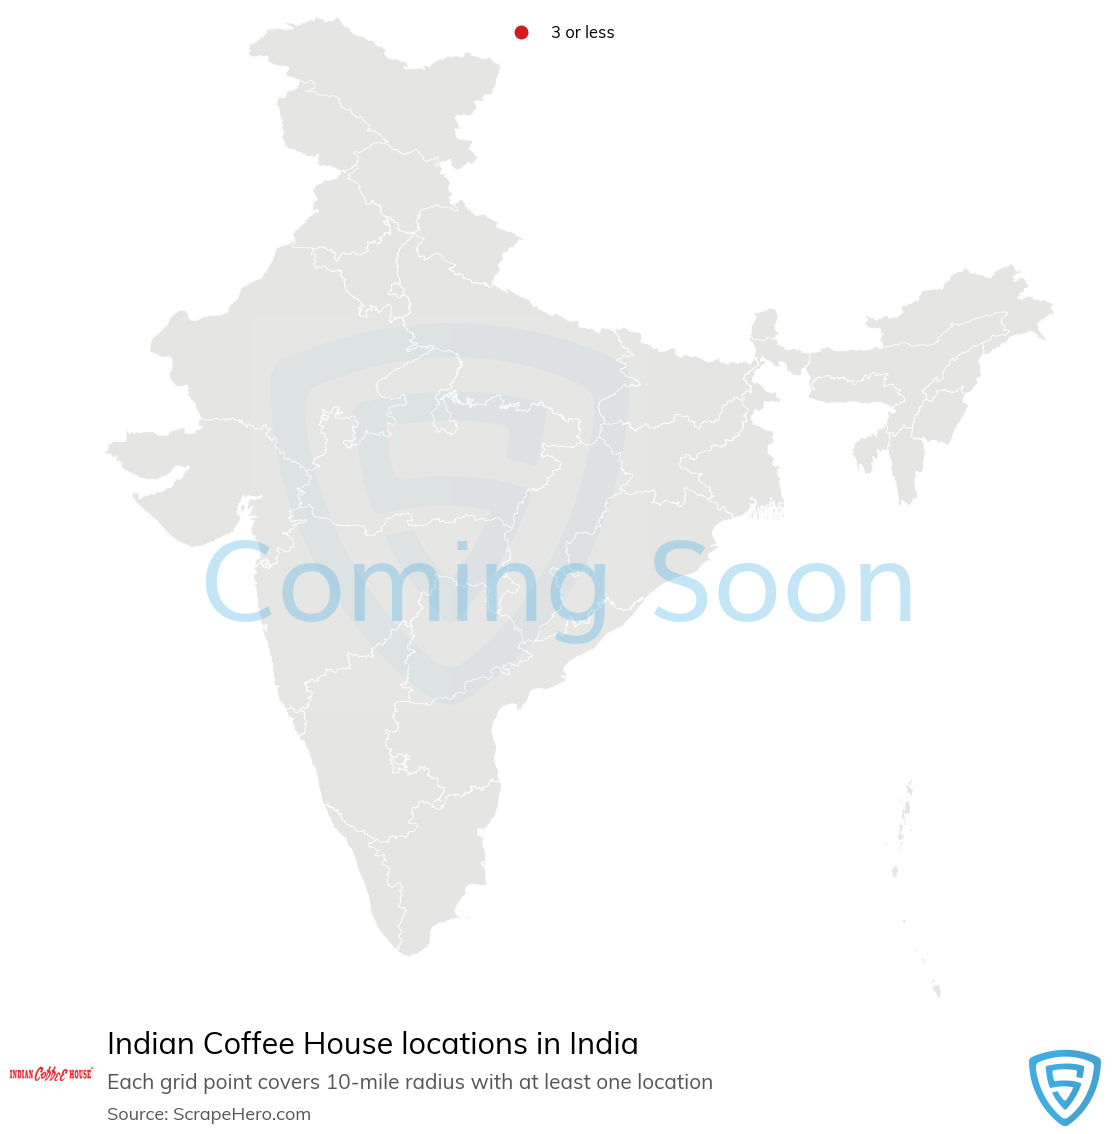 Indian Coffee House Store locations in India